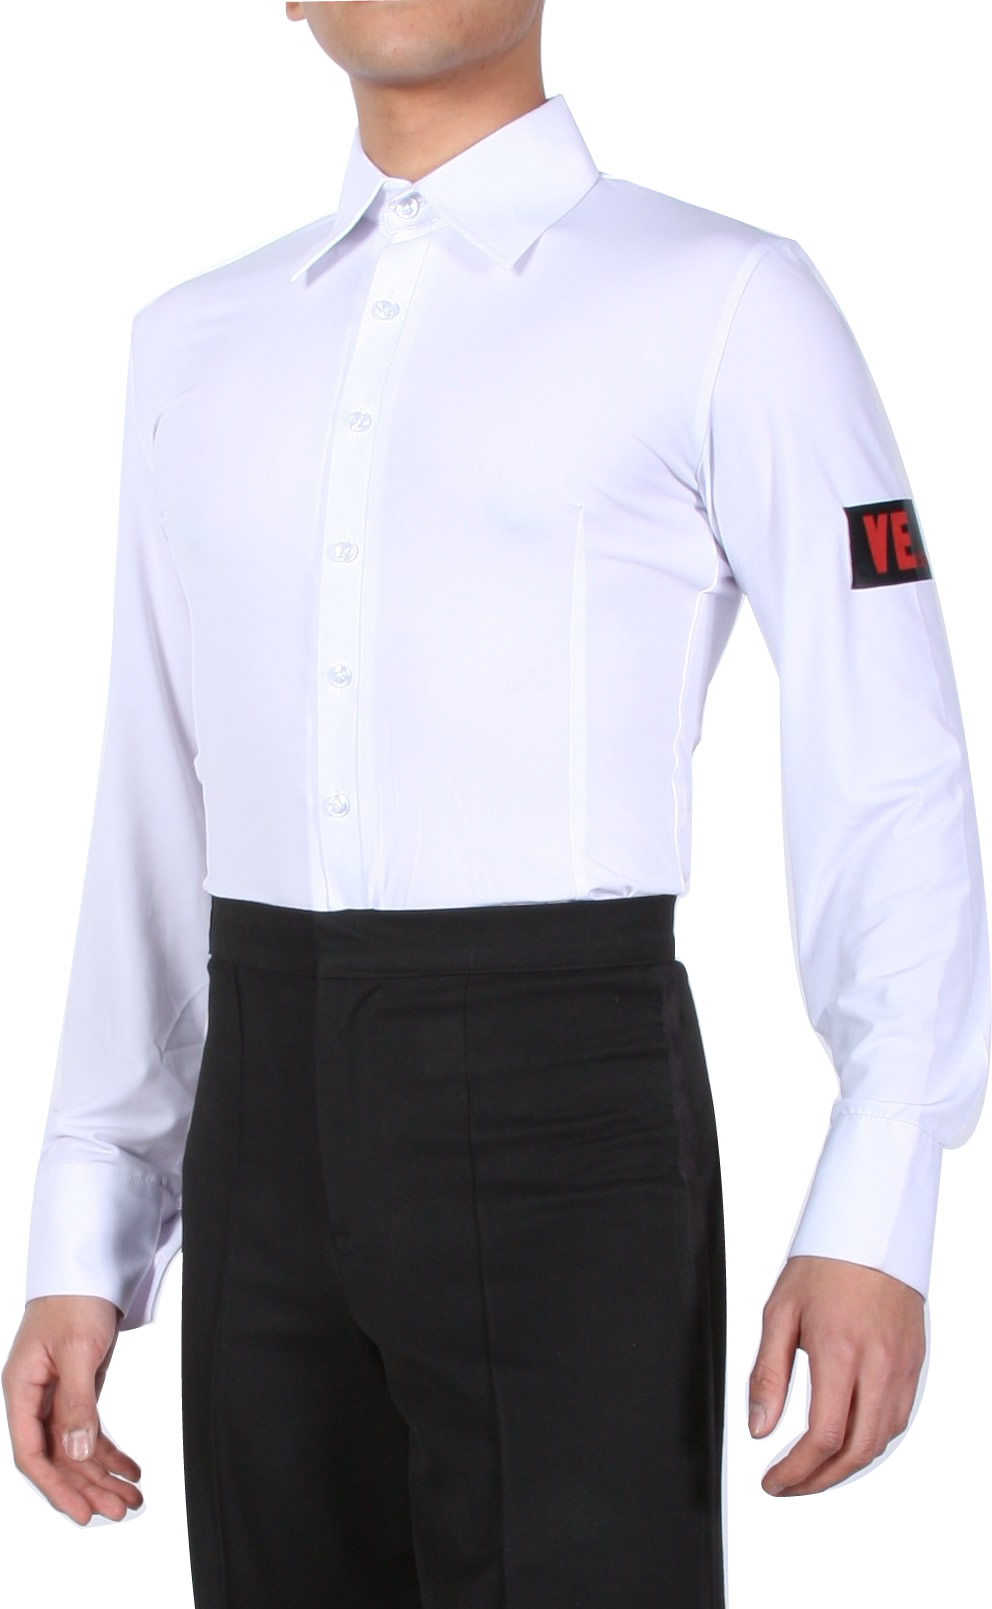 f8c0ffb87 Men's Shirts, VEdance, Men's White Standard Smooth Dance Shirt, $135.00,  from VEdance, the very best in ballroom and Latin dance shoes and dancewear.